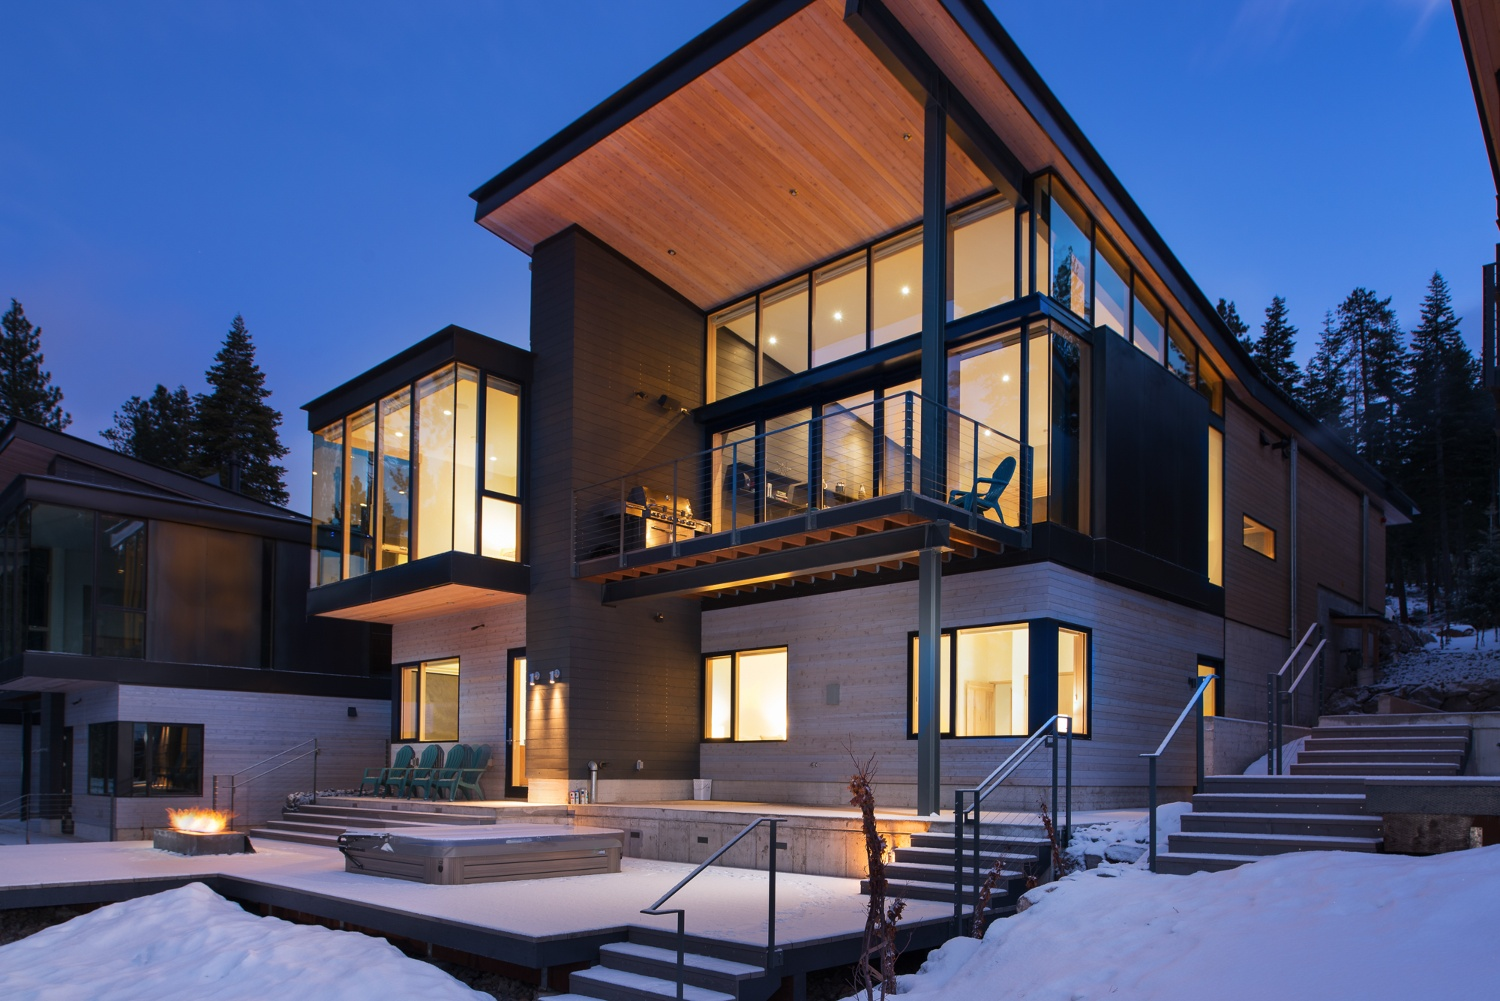 Tahoe Exclusive Vacation Rental mountain home.